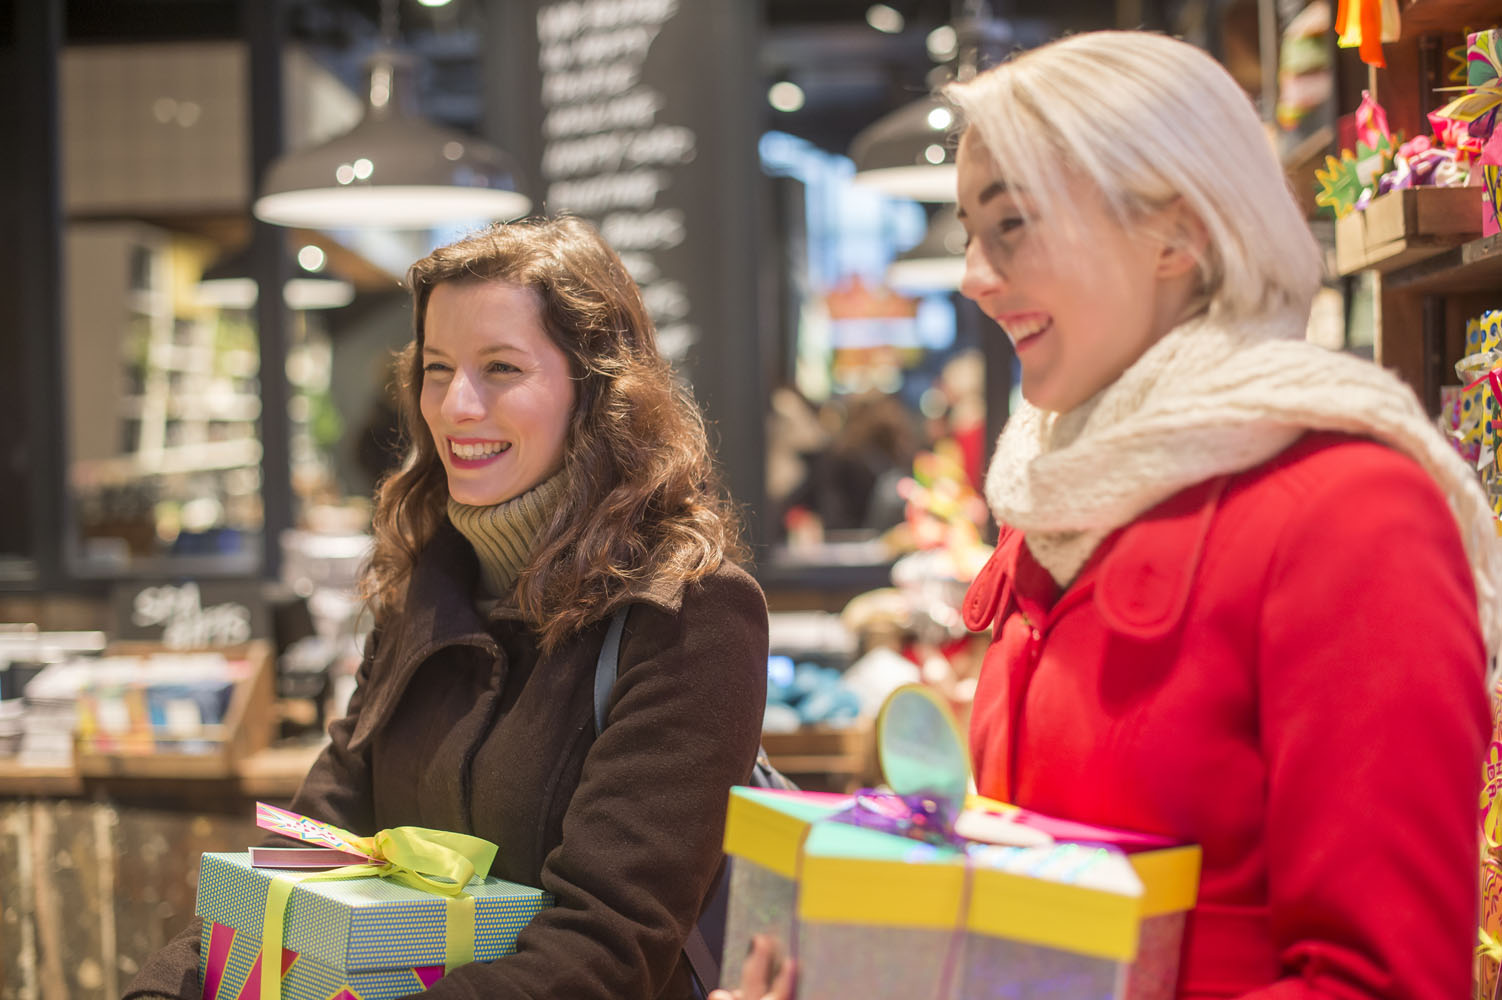 Two young ladies smile as they shop in Lush, Bournemouth.